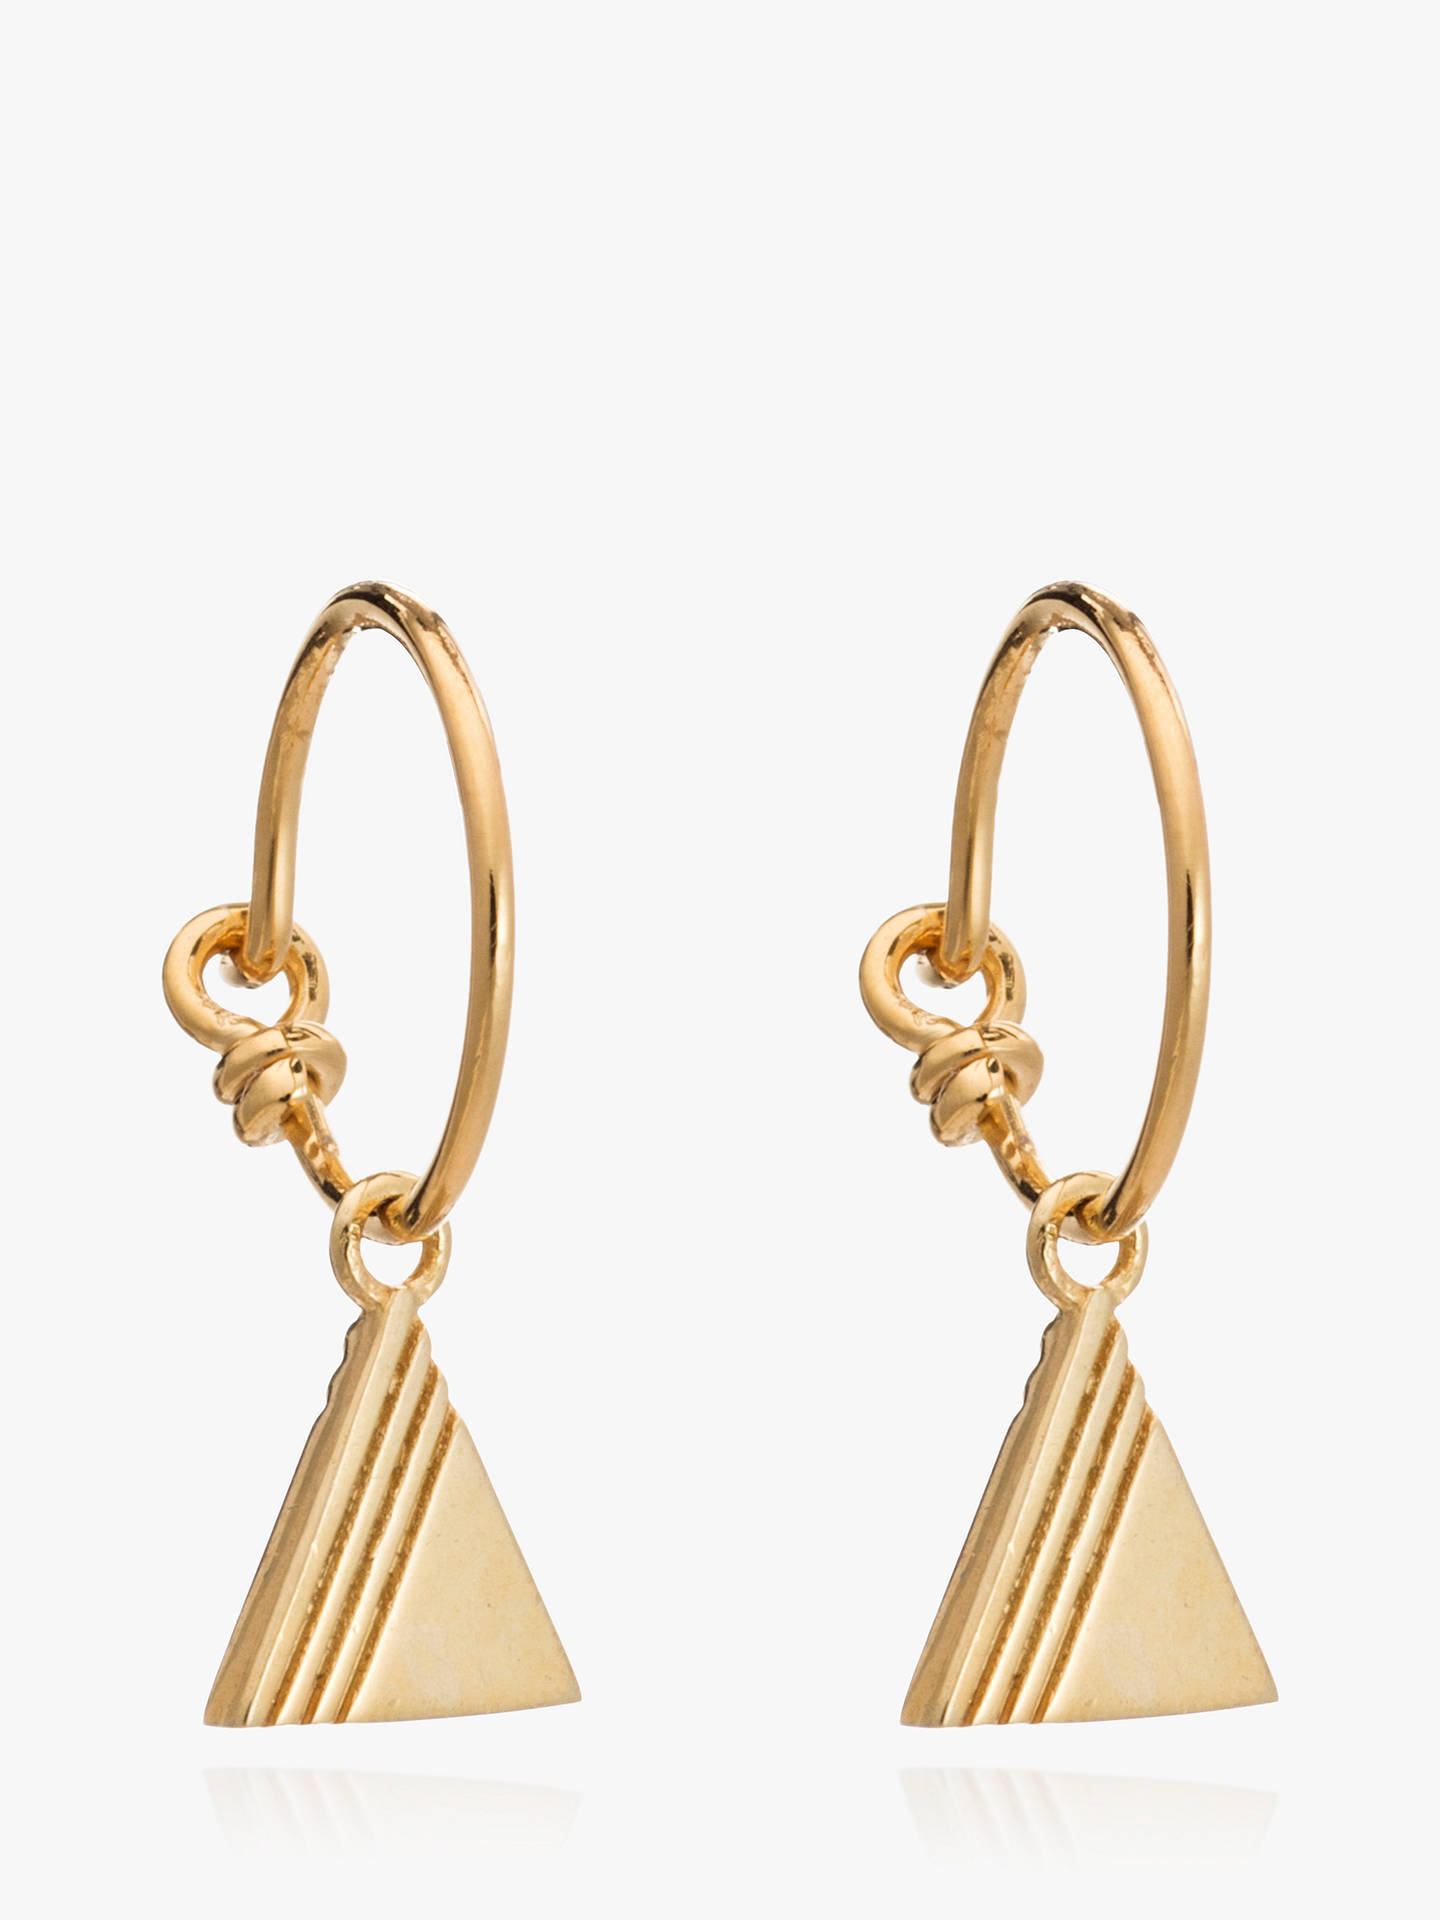 Buy Rachel Jackson London Textured Triangle Hoop Earrings, Gold Online at johnlewis.com